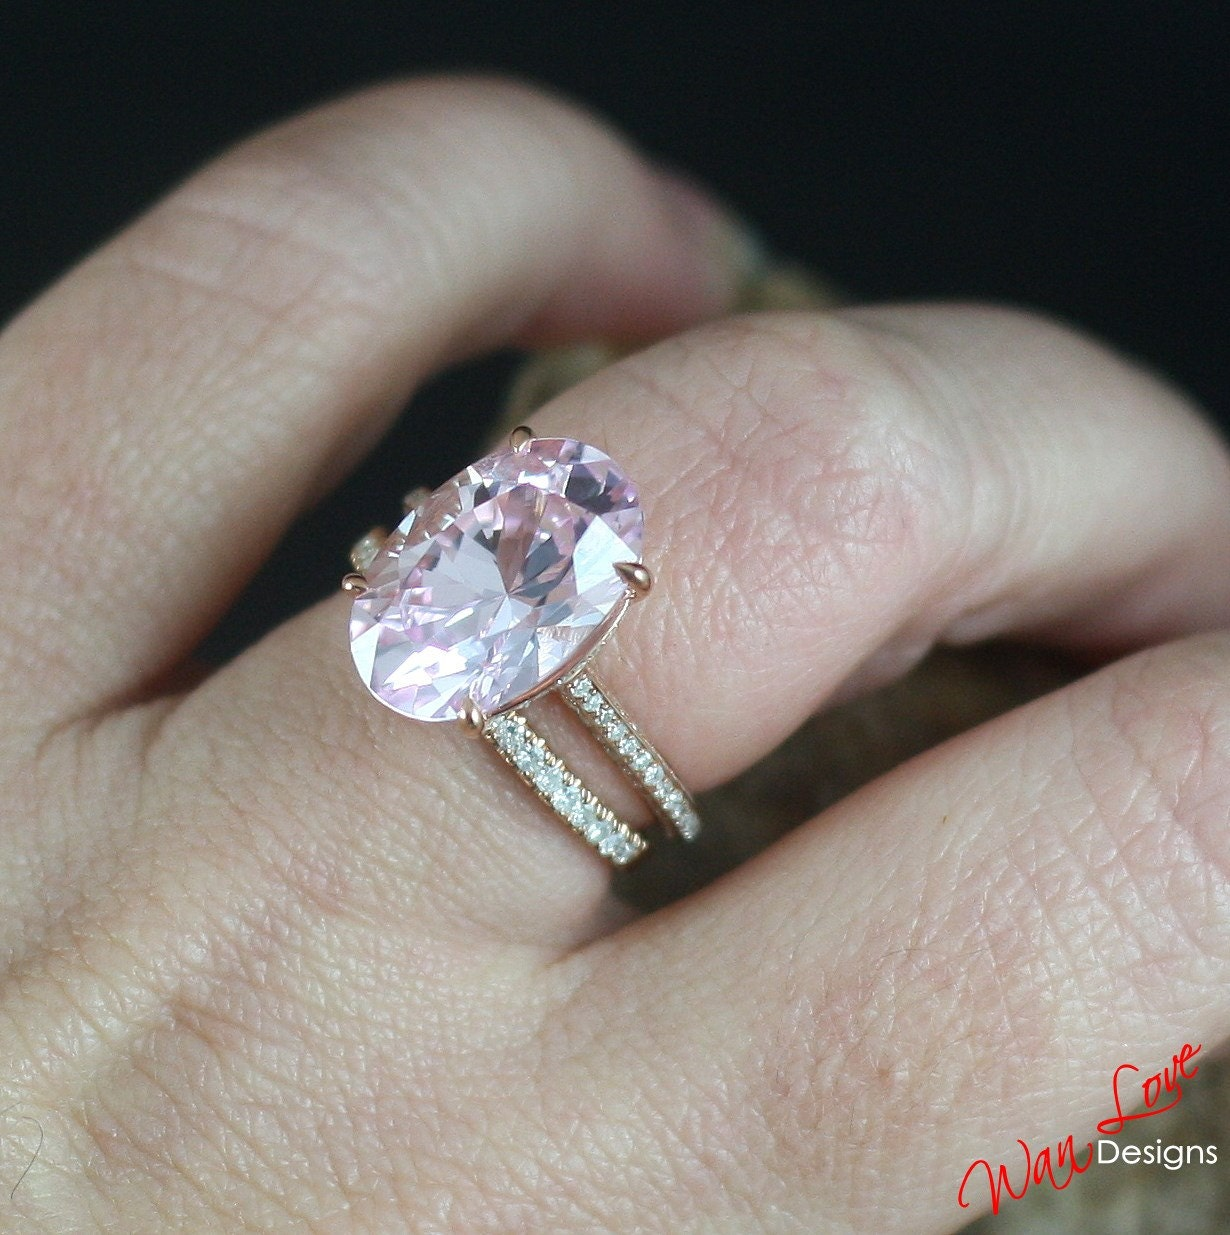 sapphire diamond pink oscar ring wedding shop pieces heyman iroff son platinum rings important